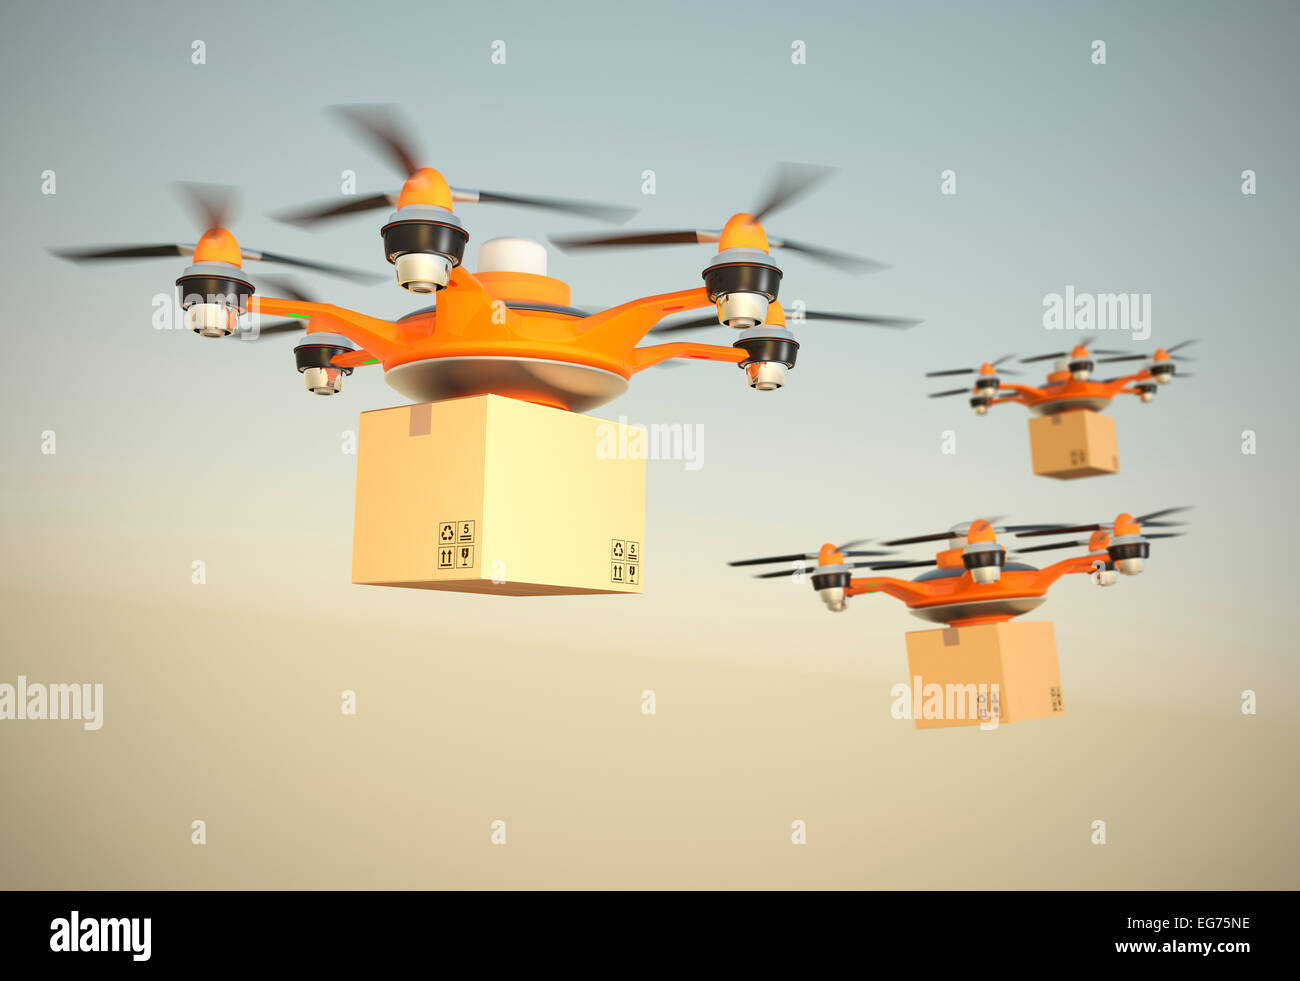 Hexacopter carrying cardboard boxes in mid air. - Stock Image